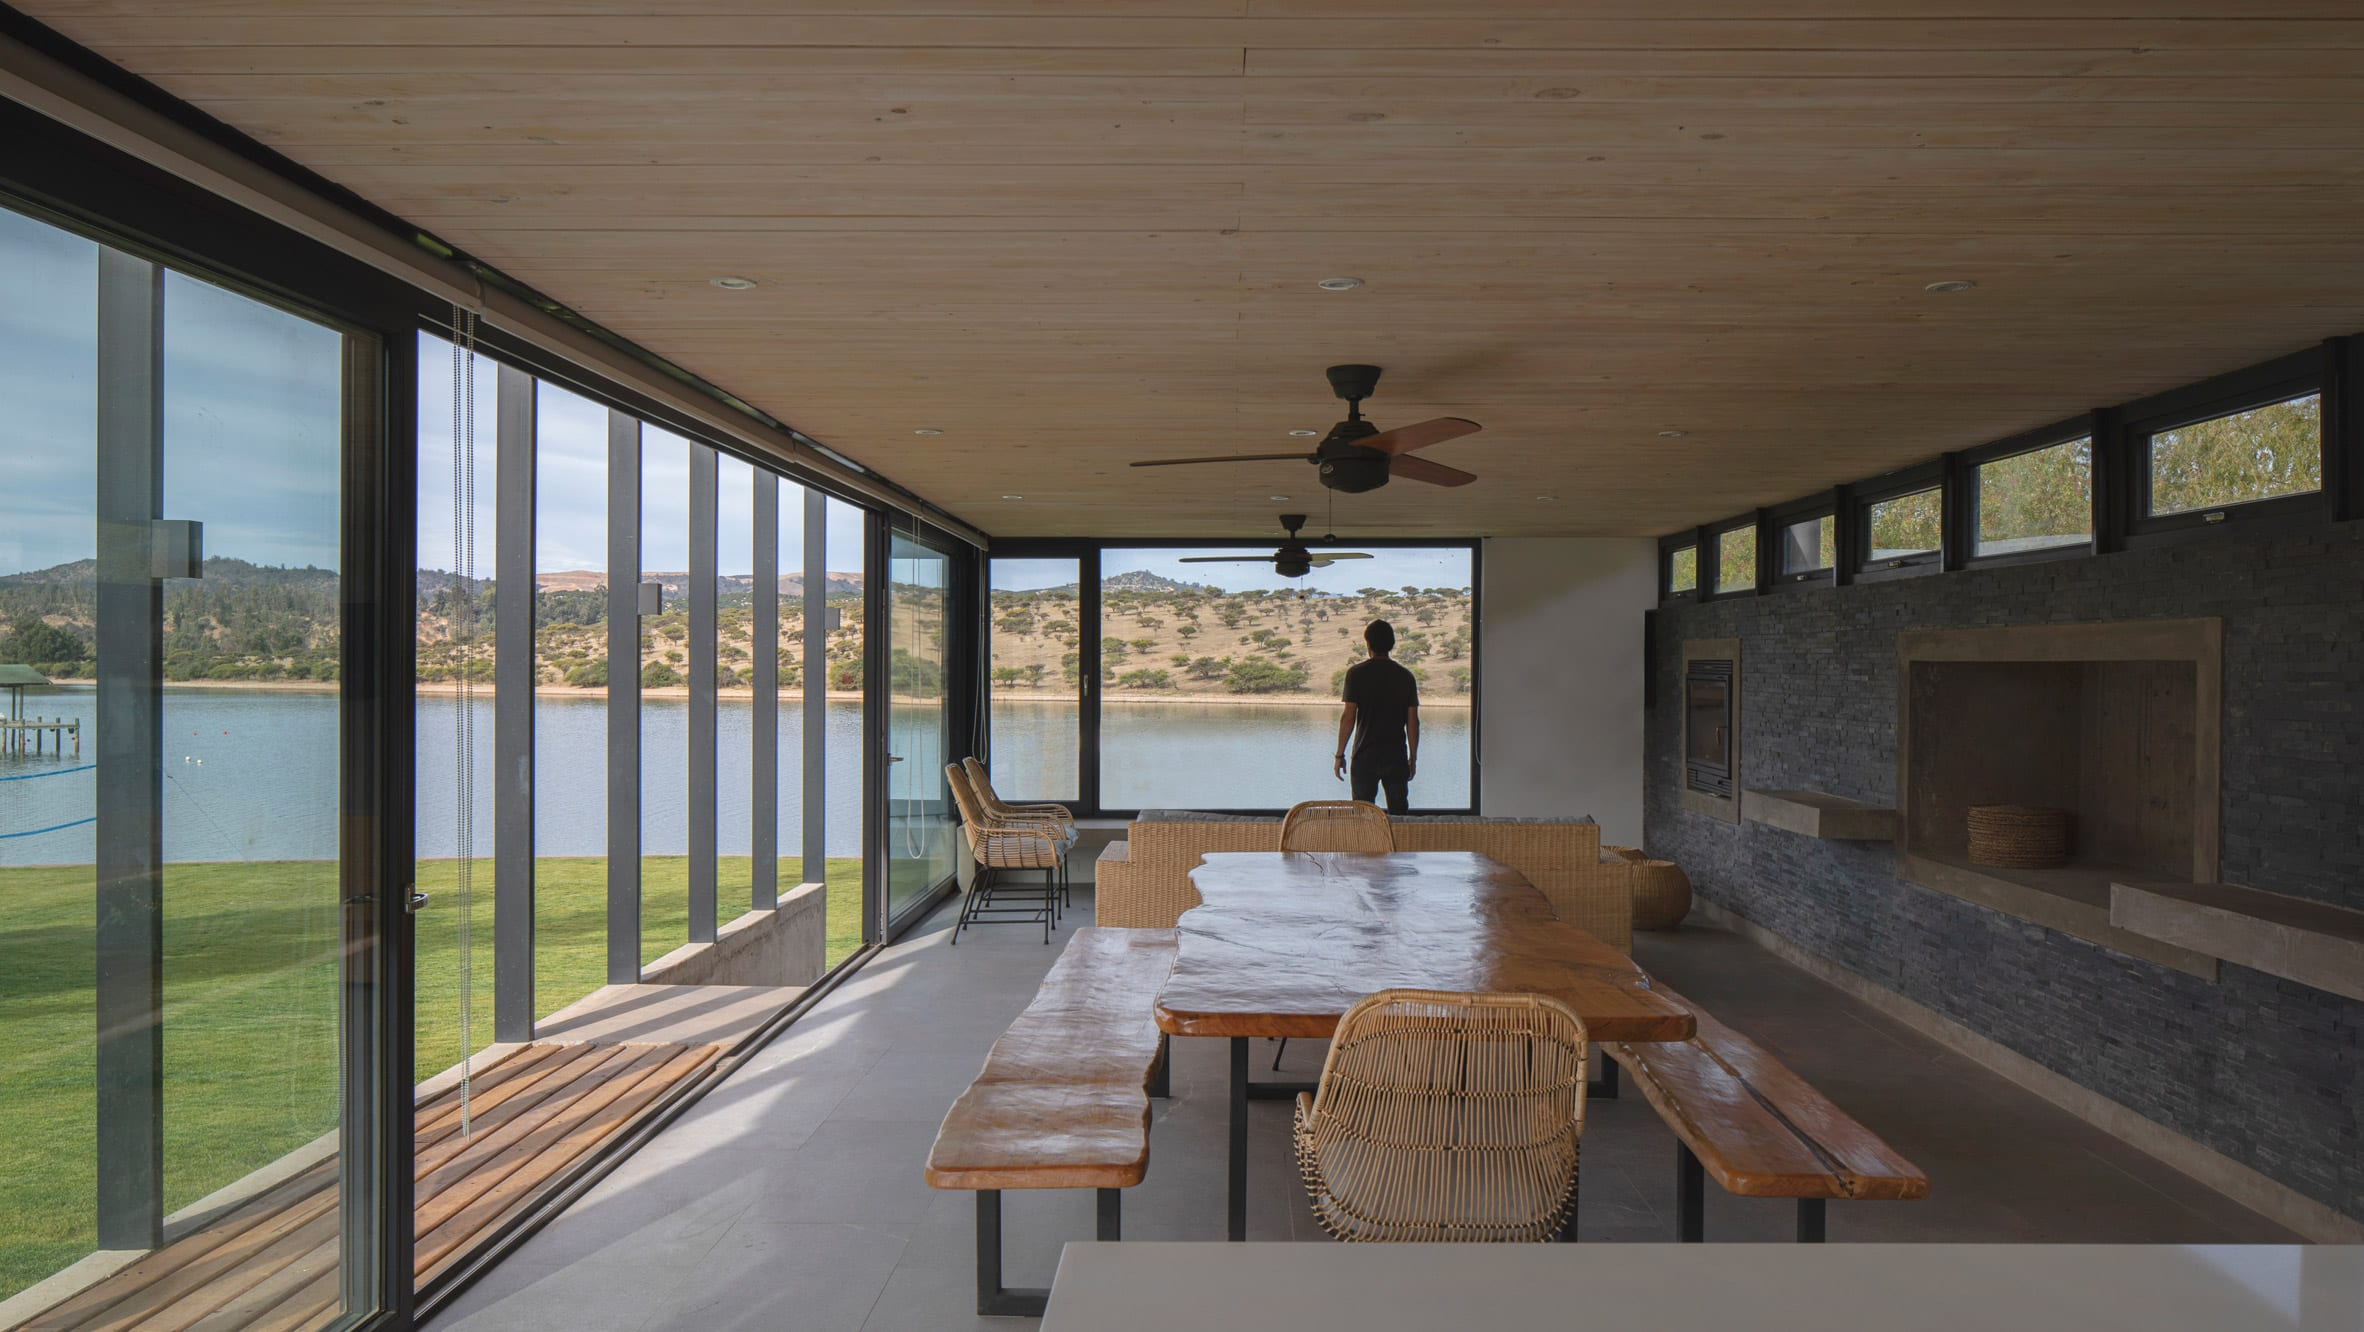 Dining room in holiday home overlooking lake